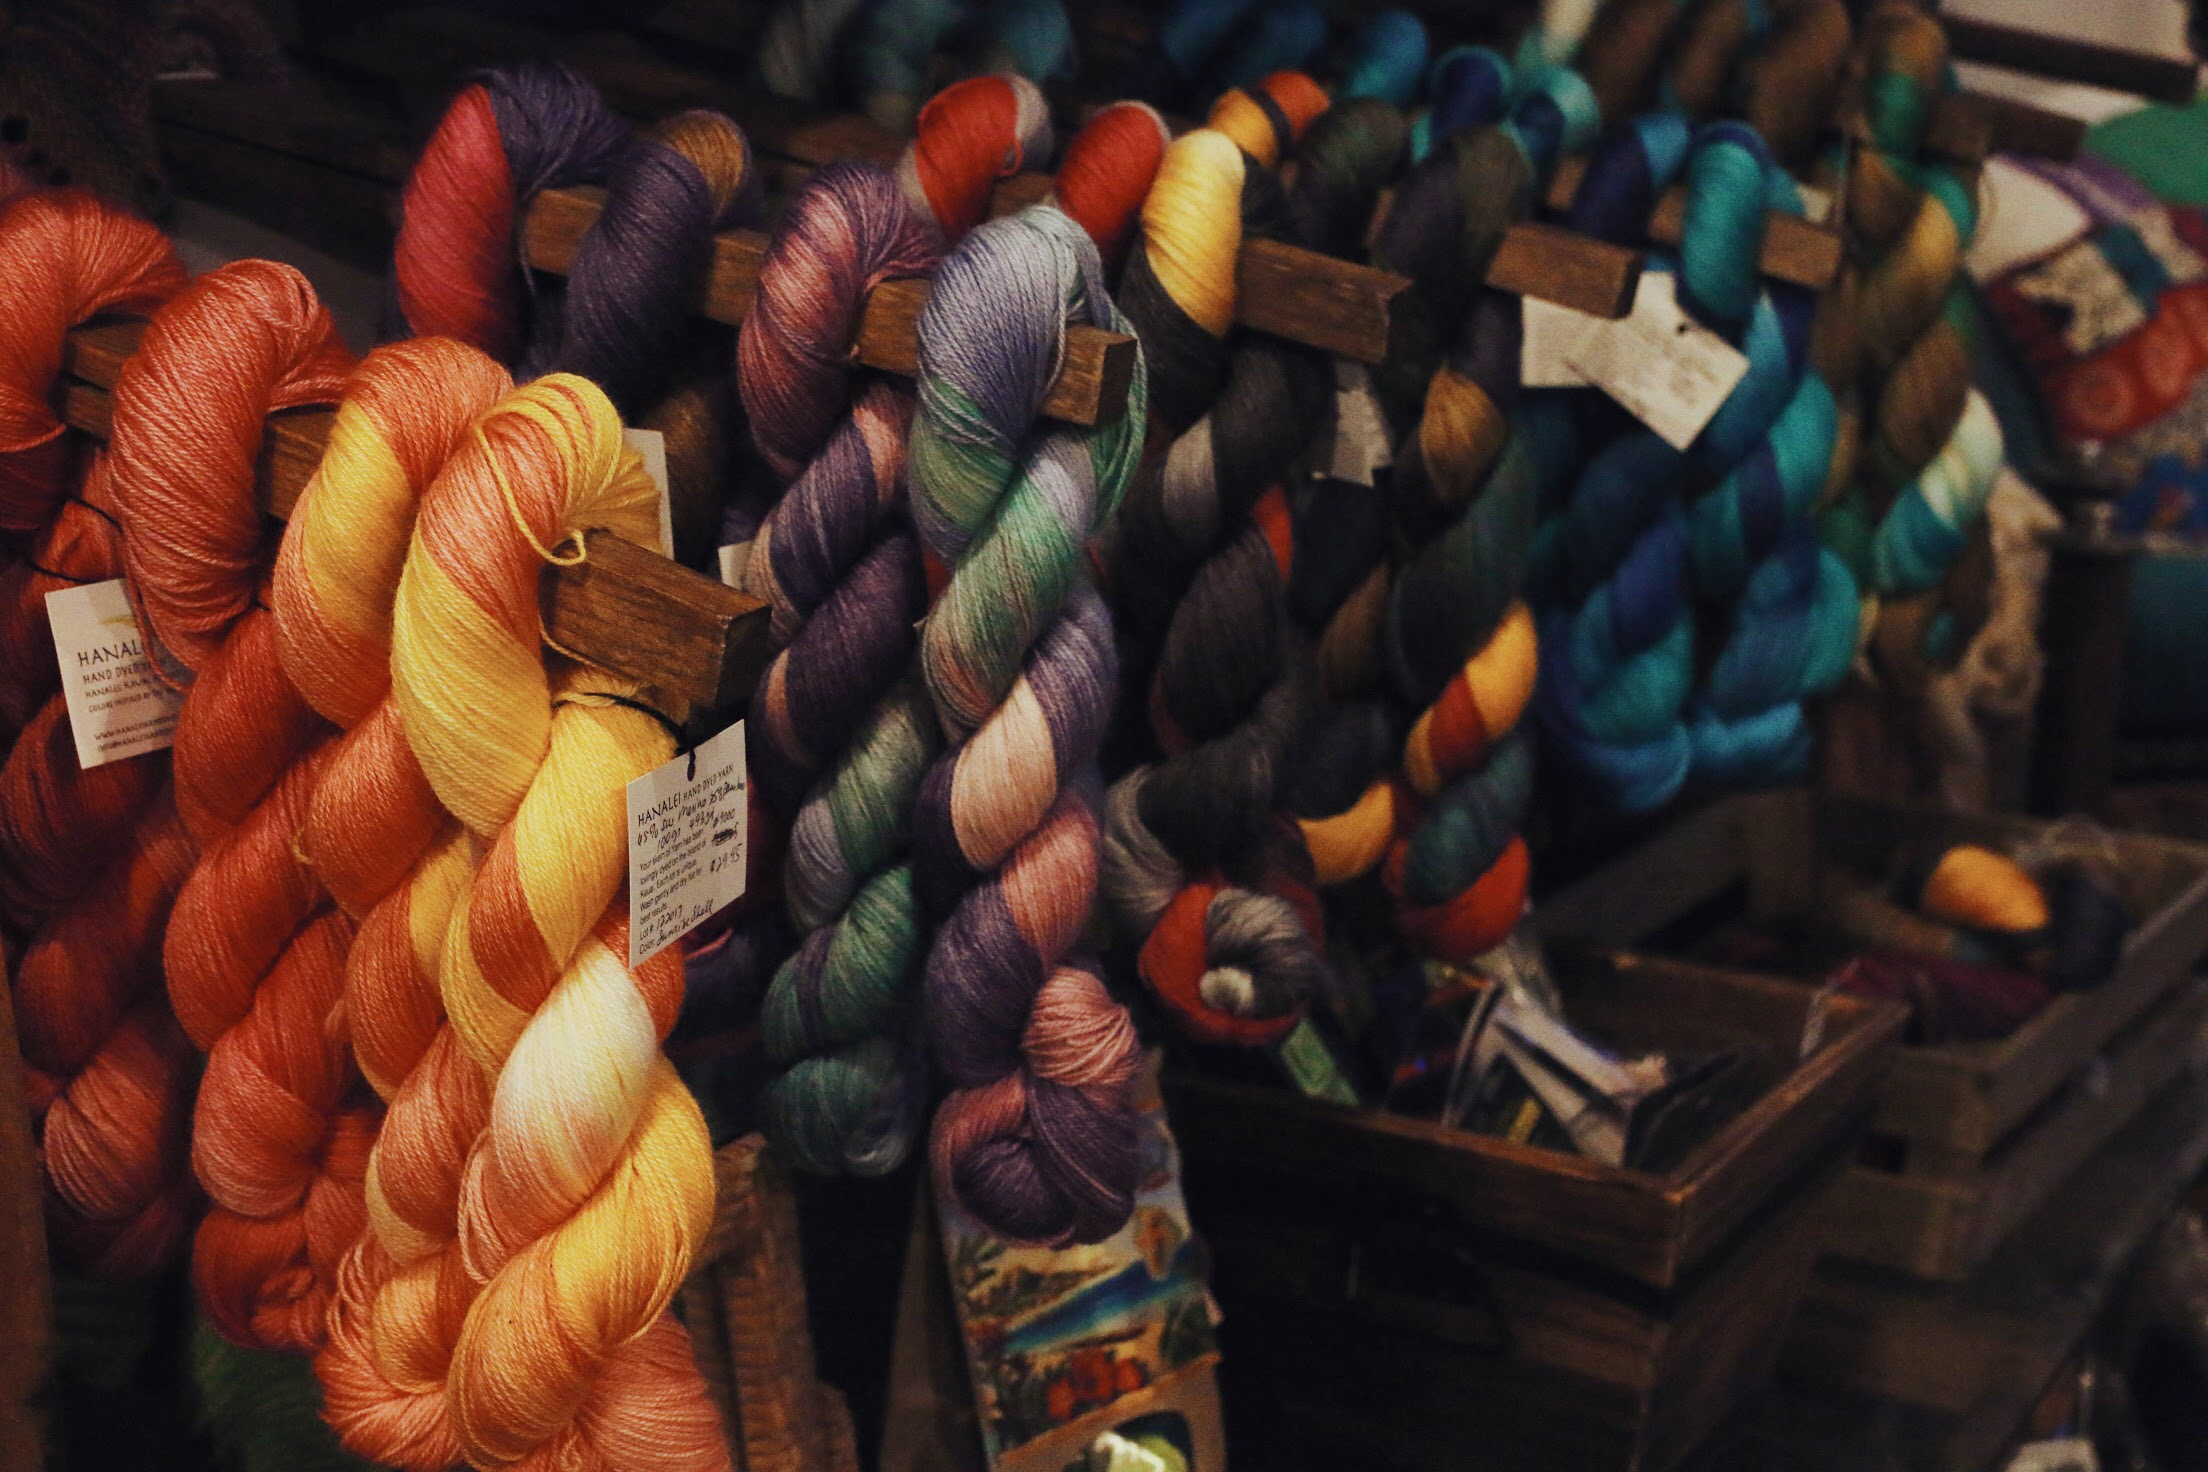 Hanalei Hand Dyed Yarn - Locally dyed yarns, in an assortment of colors all inspired by the Kauai's natural beauty… We are the only yarn shop on the island!